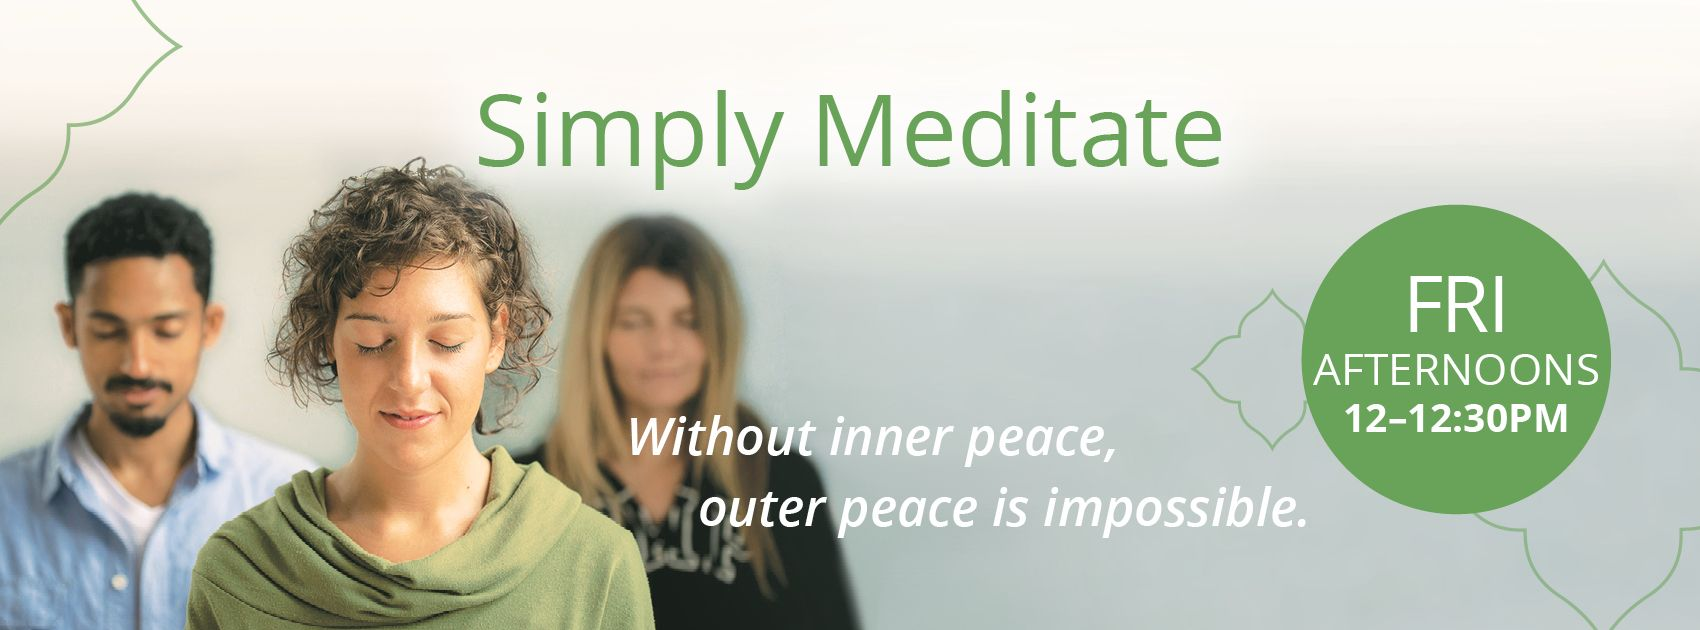 Simply Meditate Wednesday and Friday